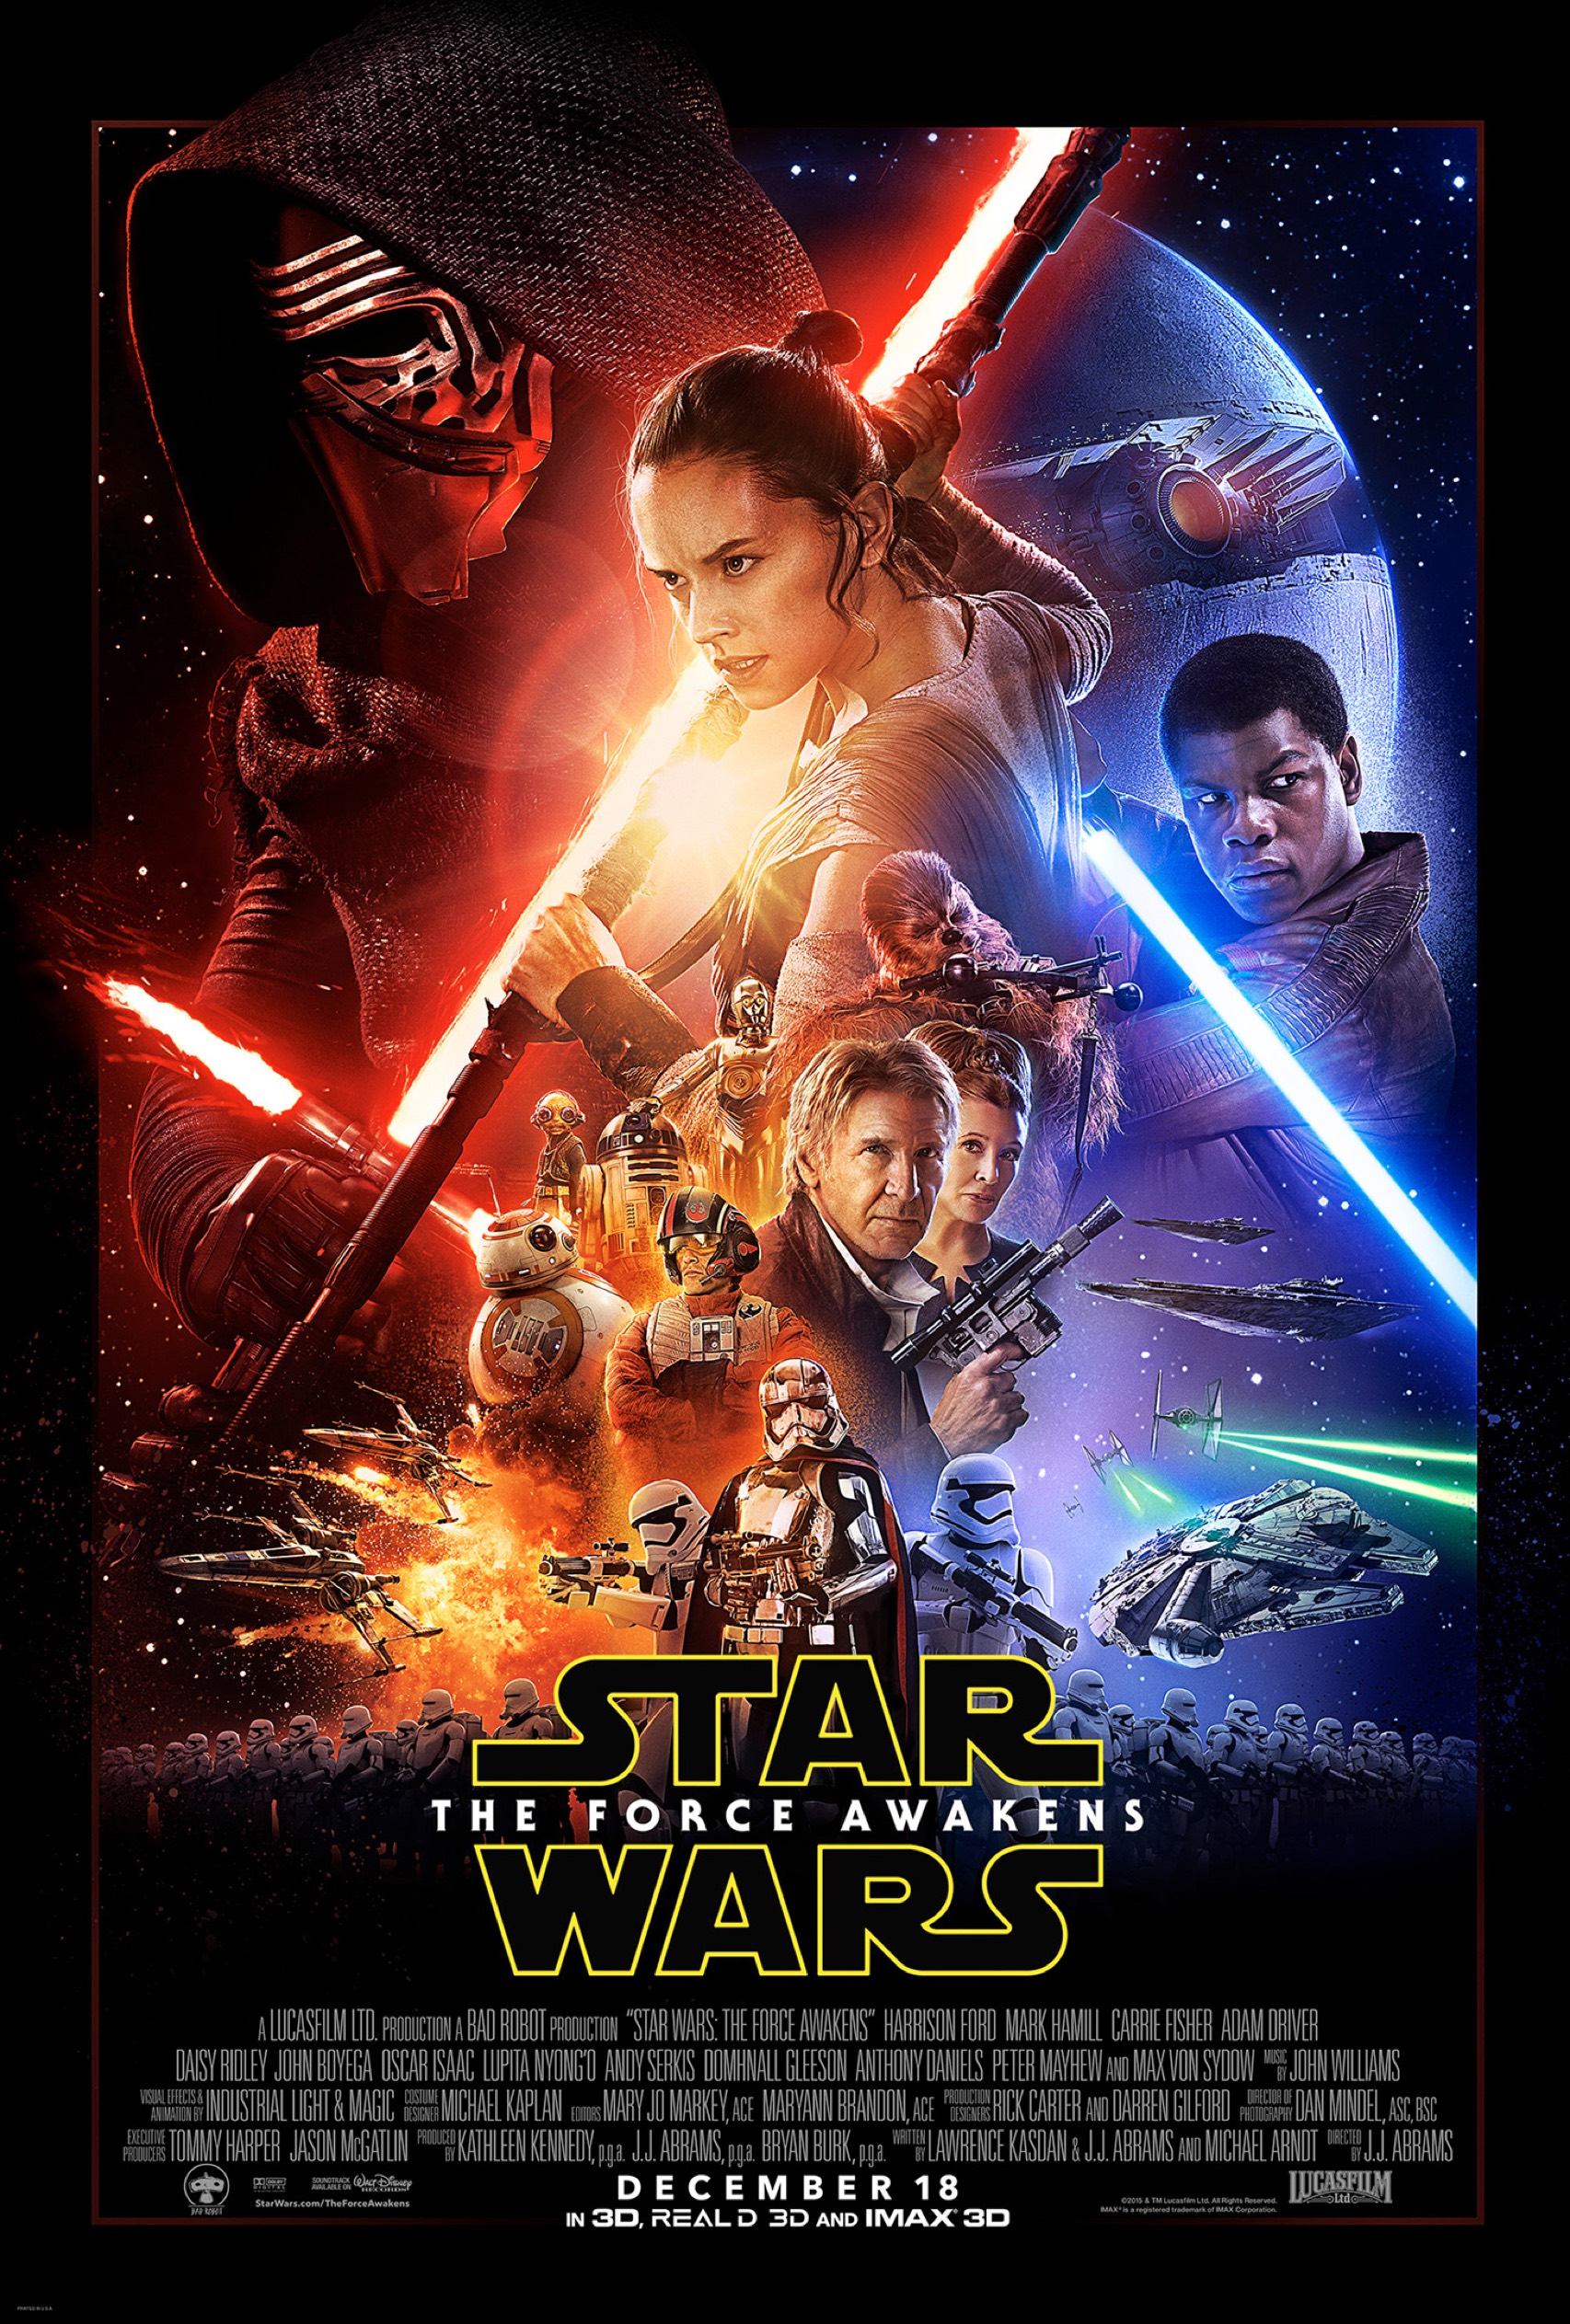 Star-Wars-The-Force-Awakens-poster-vertical